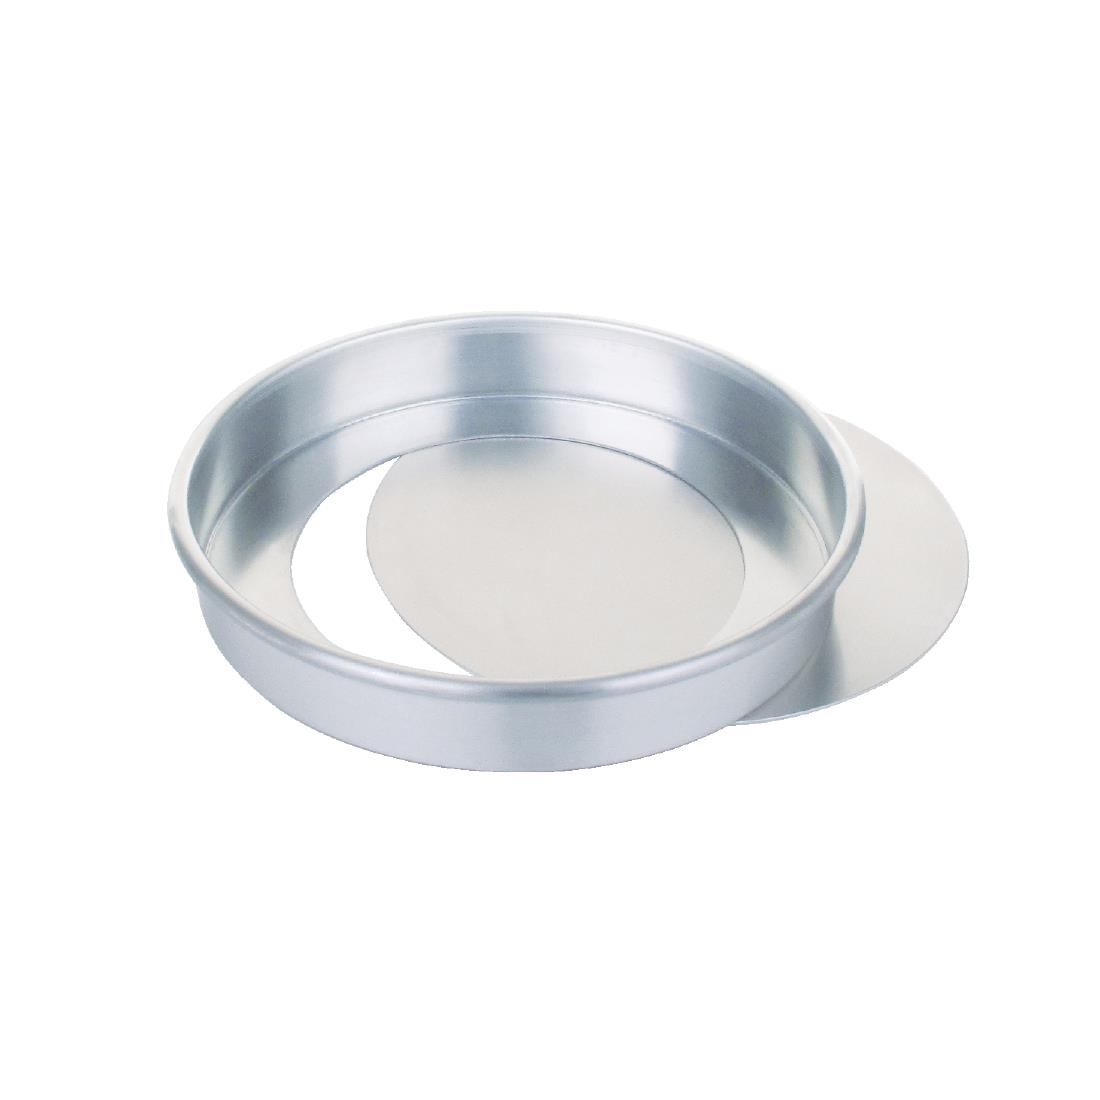 Image of Aluminium Sandwich Cake Tin With Removable Base 200mm